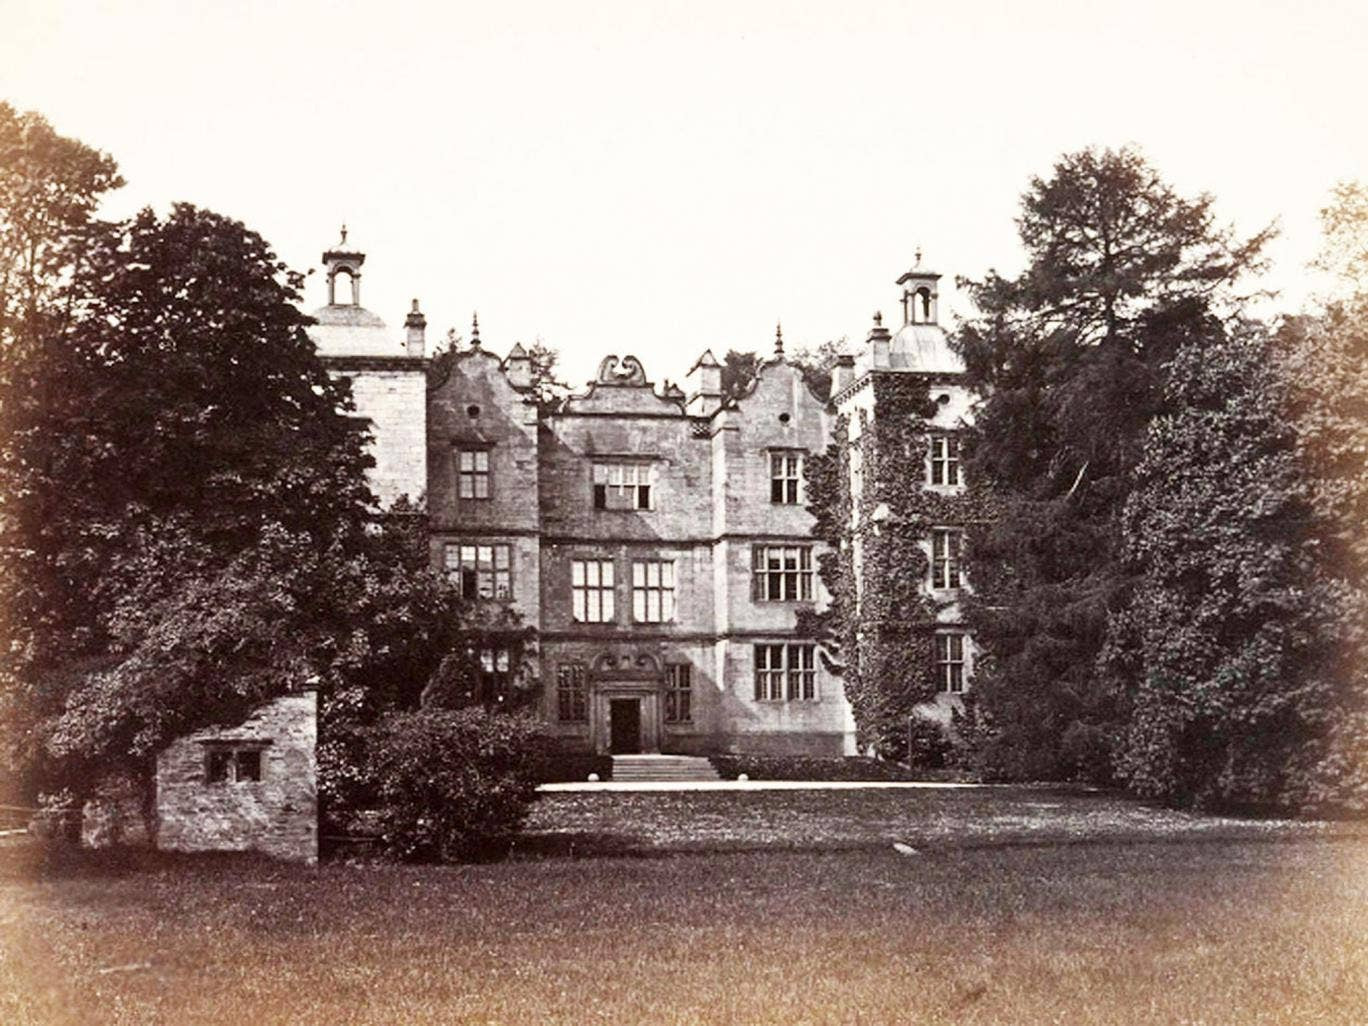 <p><strong>15. Plas Teg Mansion, Flintshire</strong></p> <p>Plas Teg, a Jacobean house near the the village of Pontblyddyn, Flintshire between Wrexham and Mold, is said to be one of Wales' most haunted buildings. One of its late owners was the infamous 'h